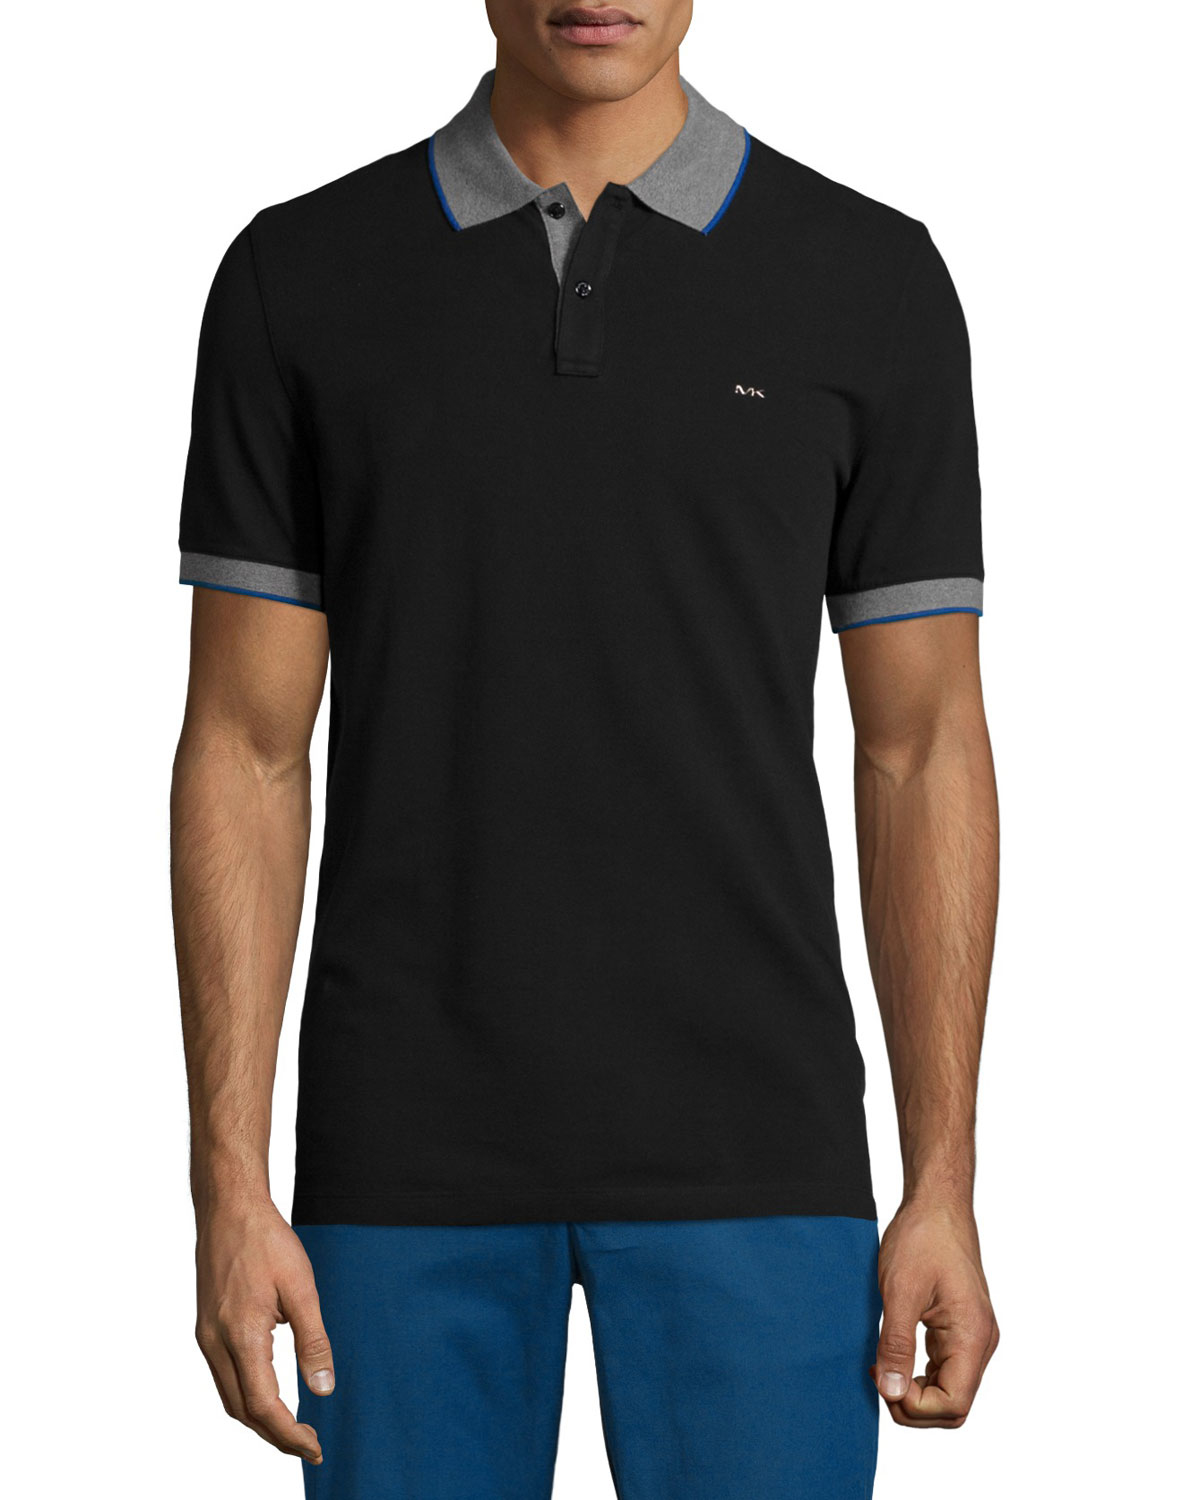 c25812dd Michael Kors Tape-tipped Short-sleeve Pique Polo Shirt in Black for ...